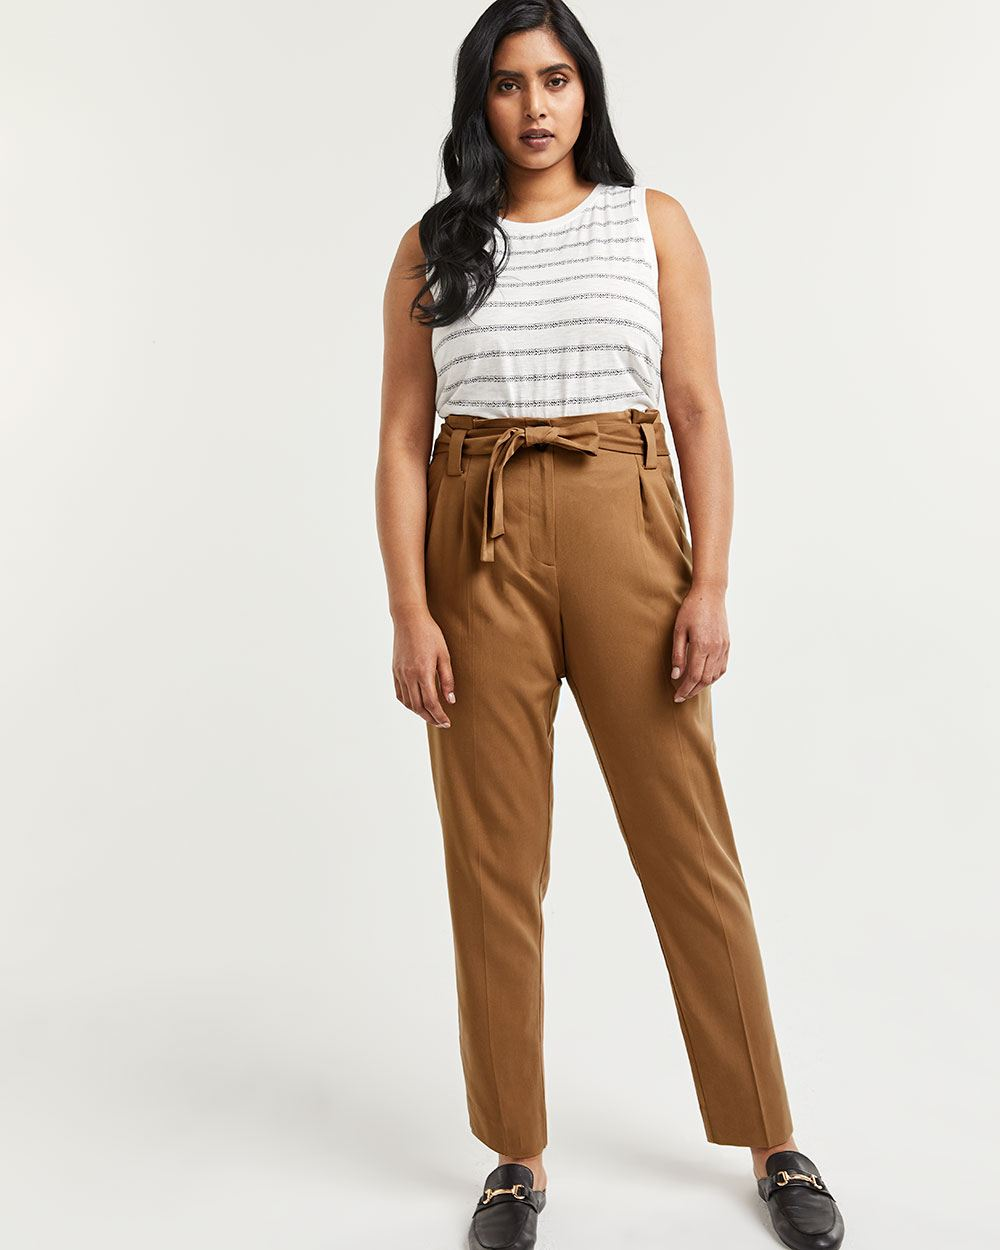 High Rise Tapered Paperbag Pants with Sash